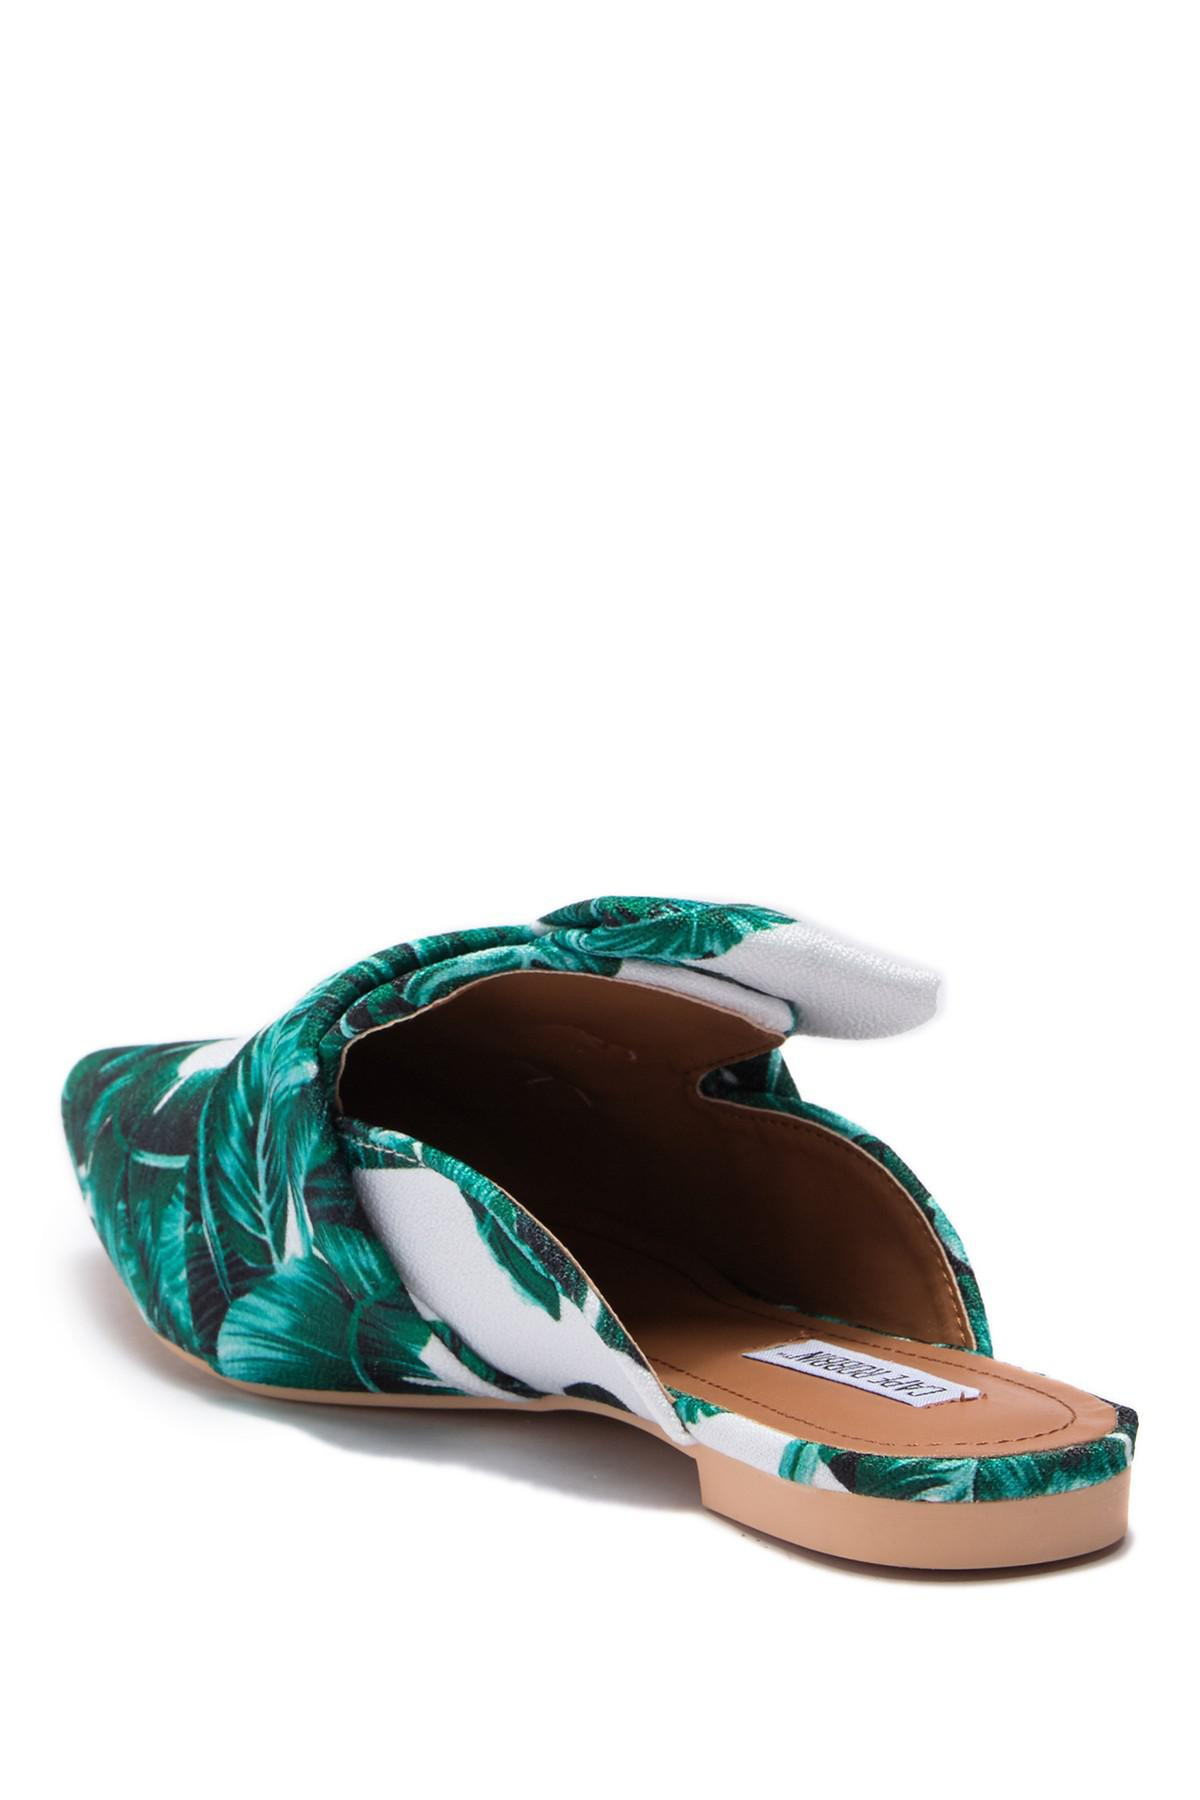 c512d43271e2 Lyst - Cape Robbin Cell Slide Mule Flat in Green